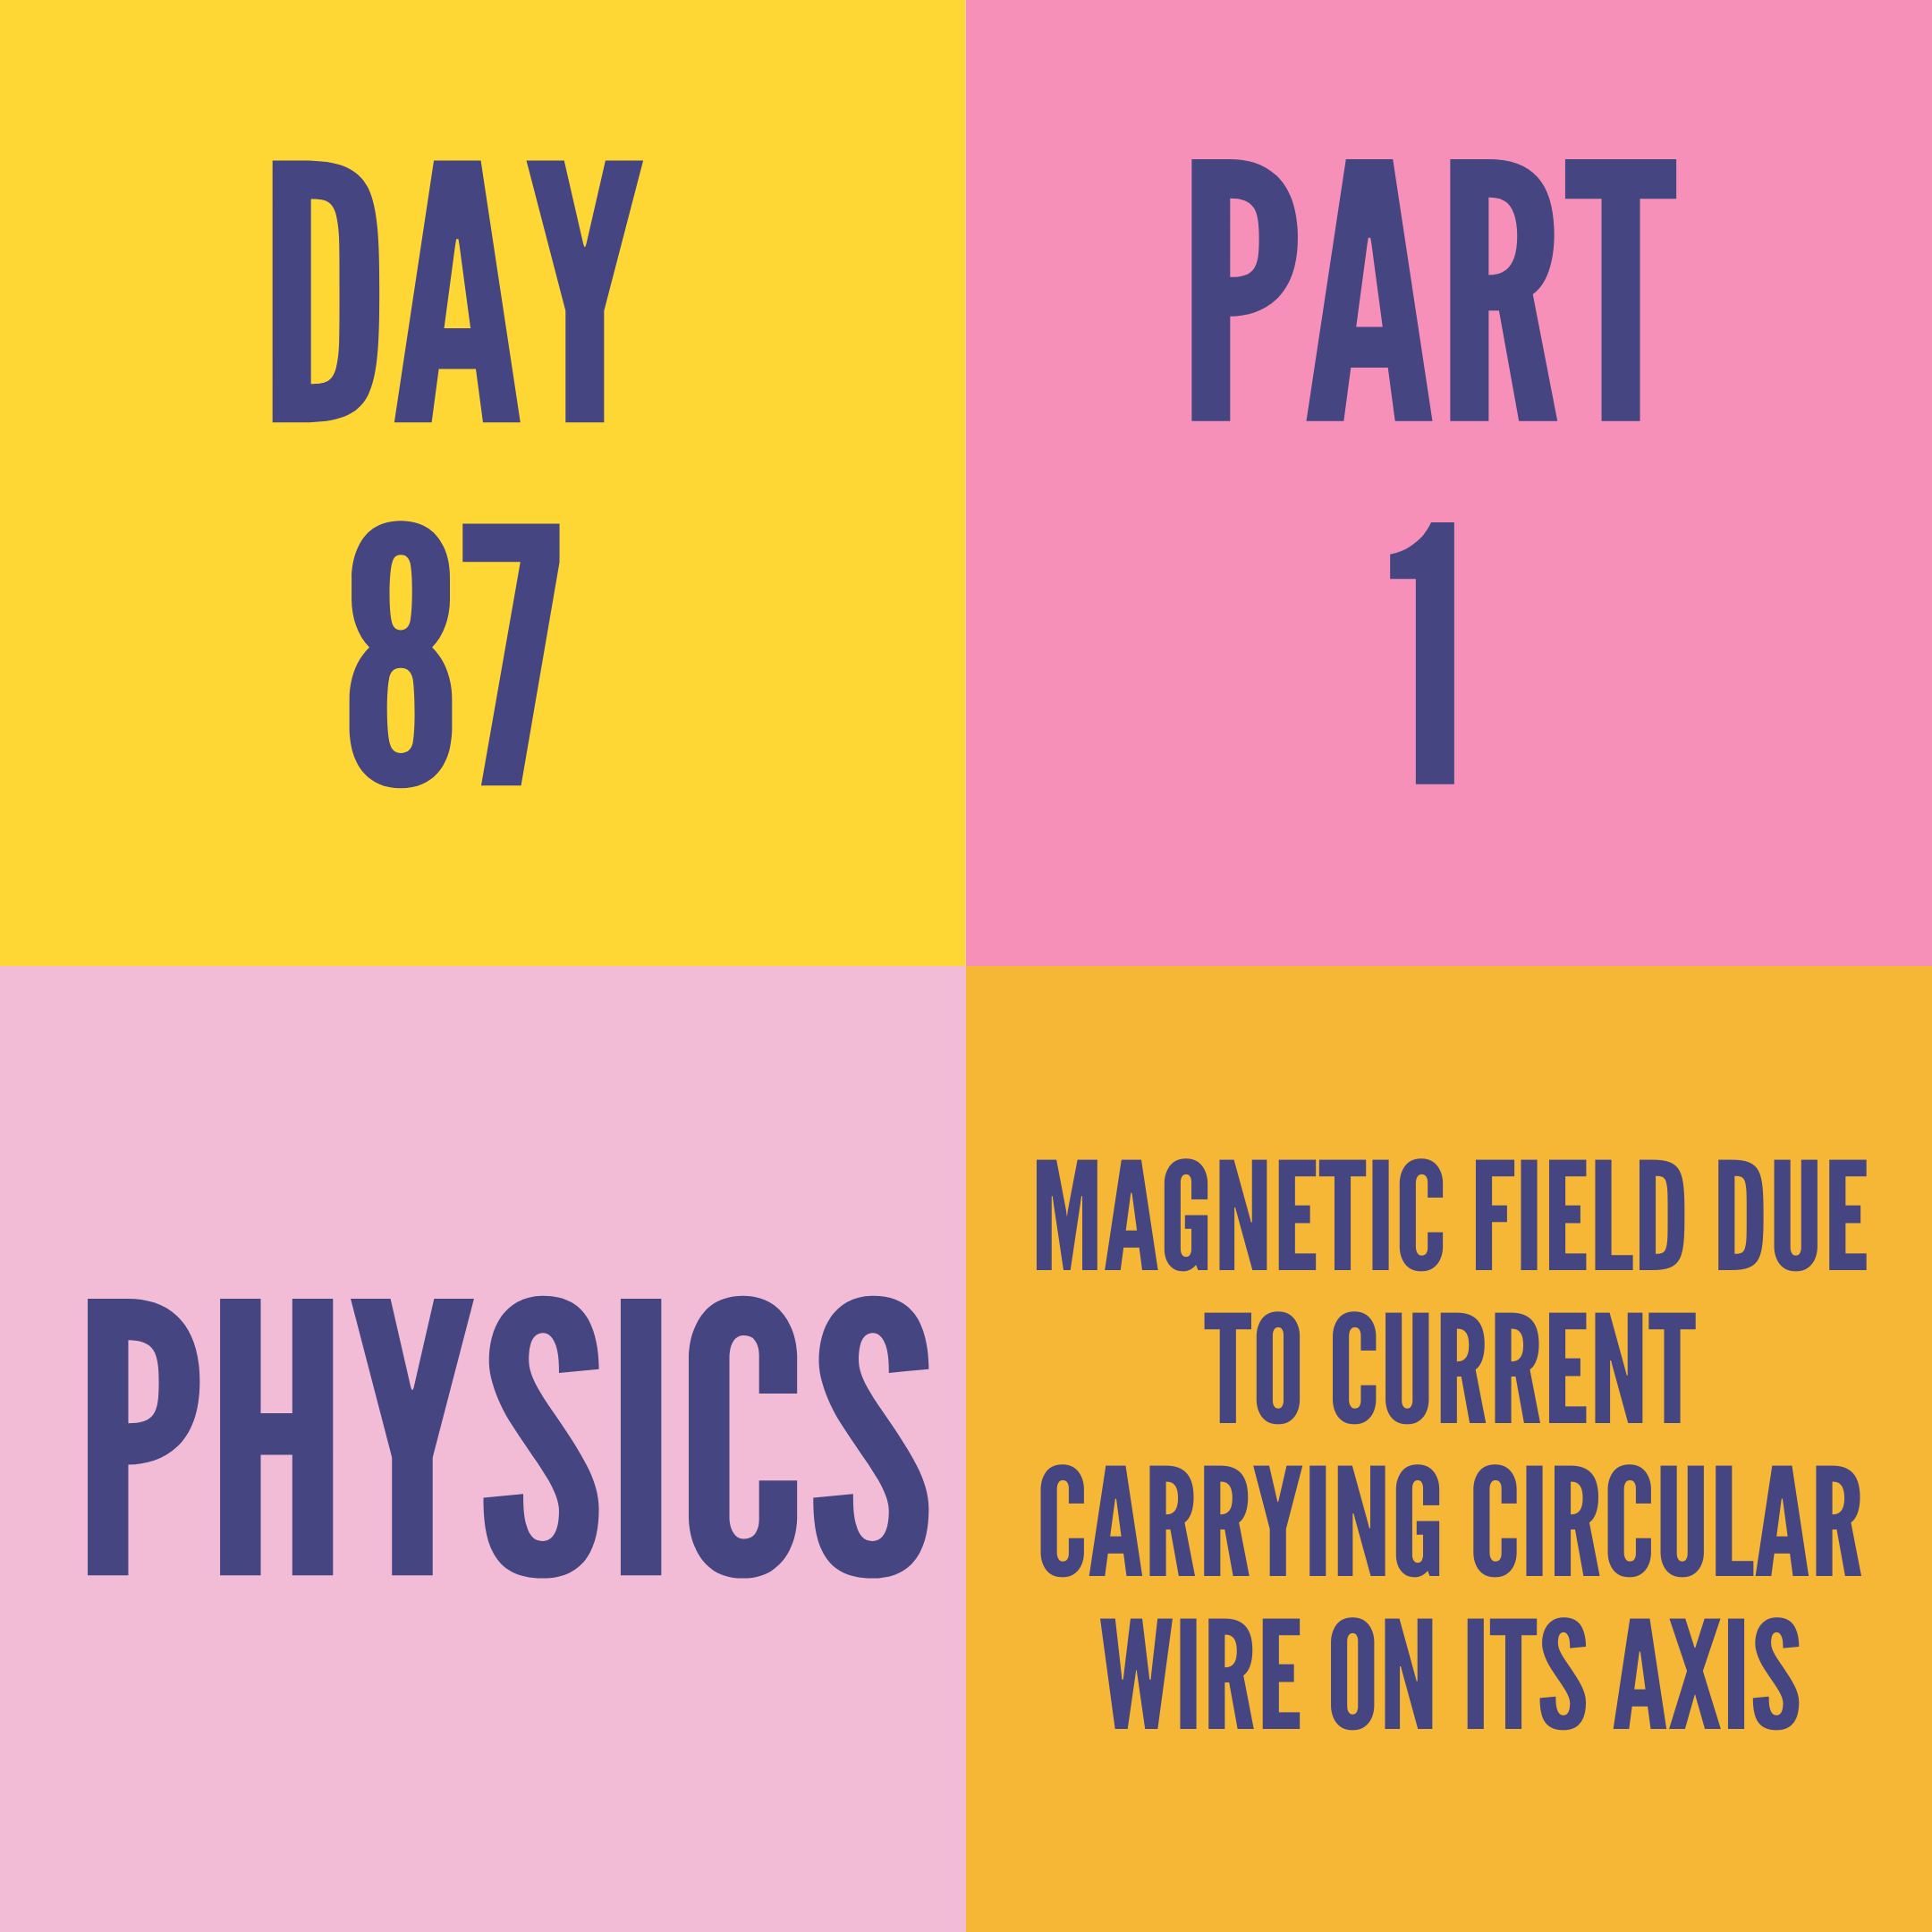 DAY-87 PART-1 MAGNETIC FIELD DUE TO CURRENT CARRYING CIRCULAR WIRE ON ITS AXIS